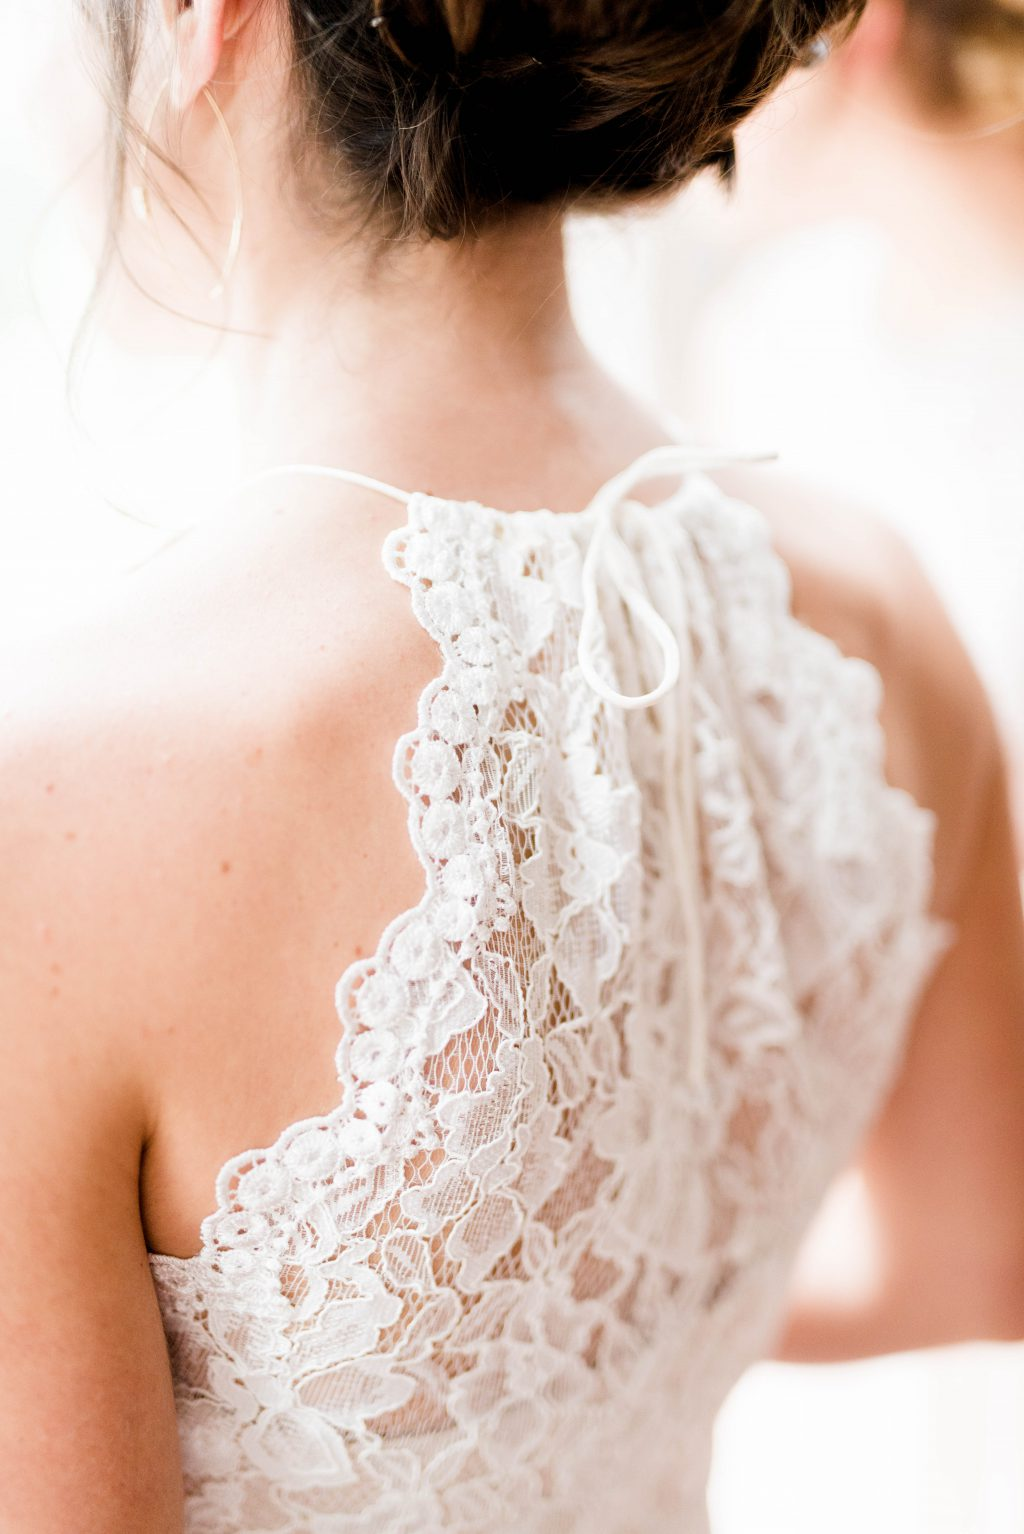 awbury-arboretum-wedding-DIY-boho-summer-haley-richter-photography-054